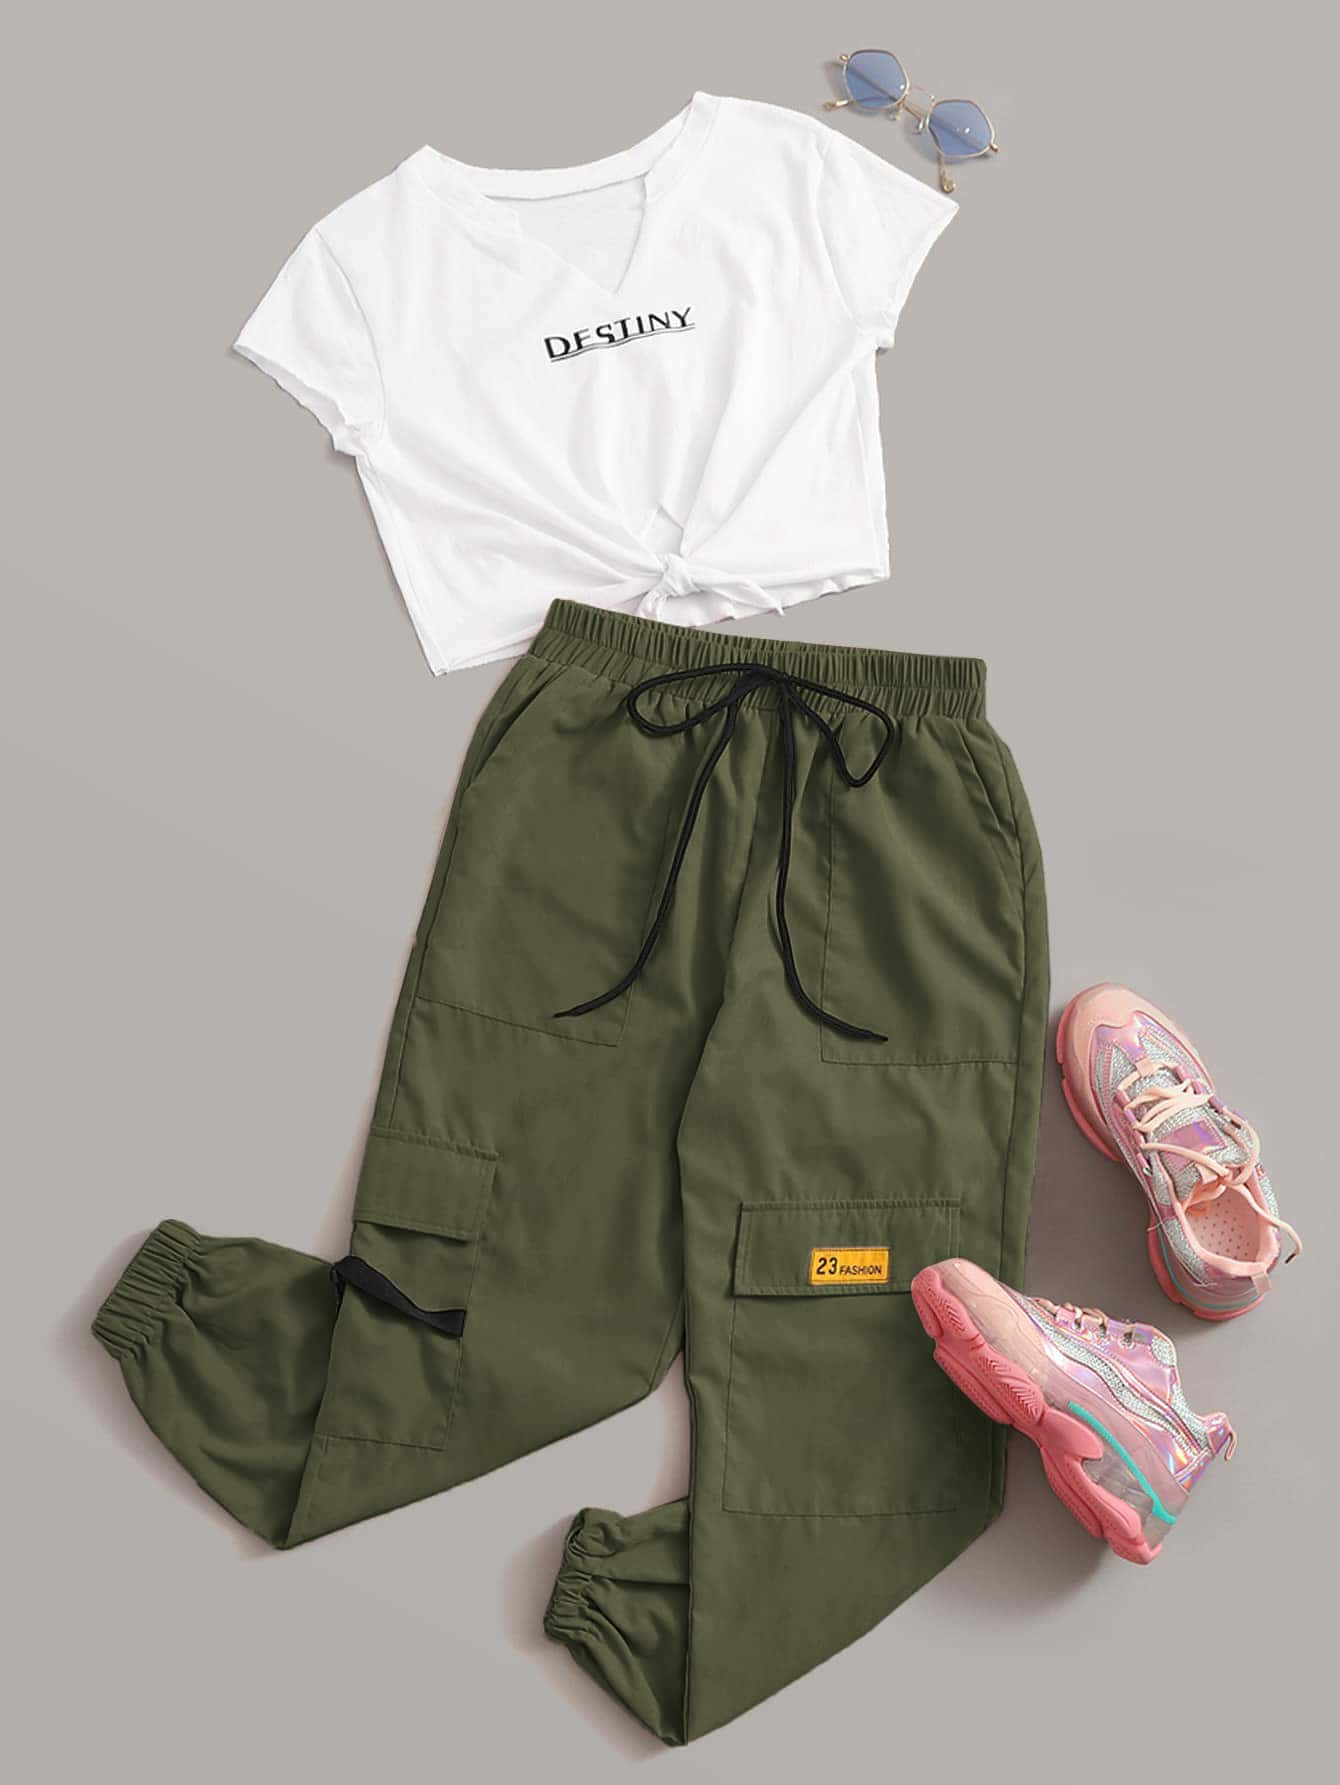 Destiny Graphic Tee & Cargo Pants Set - FLJ CORPORATIONS